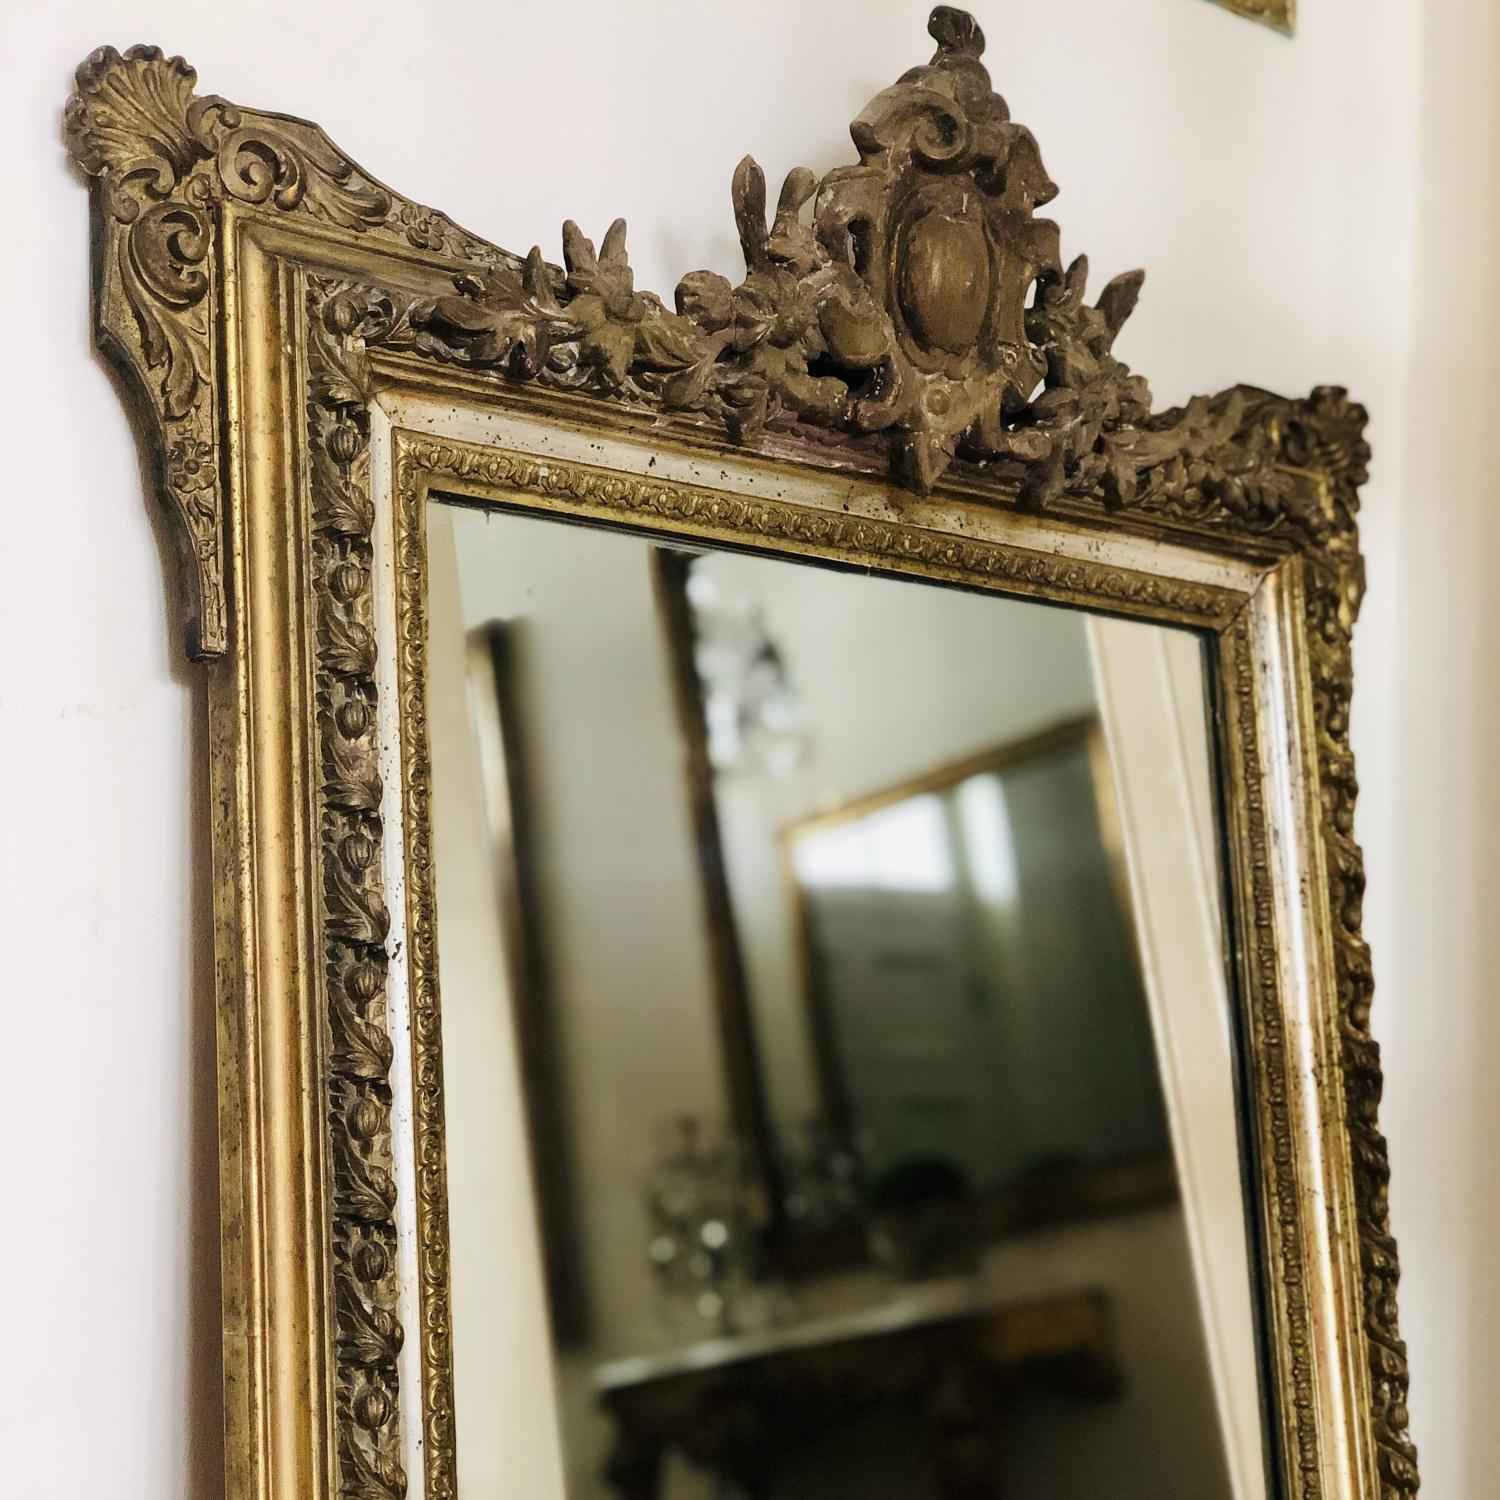 19th century French antique gilt crested mirror